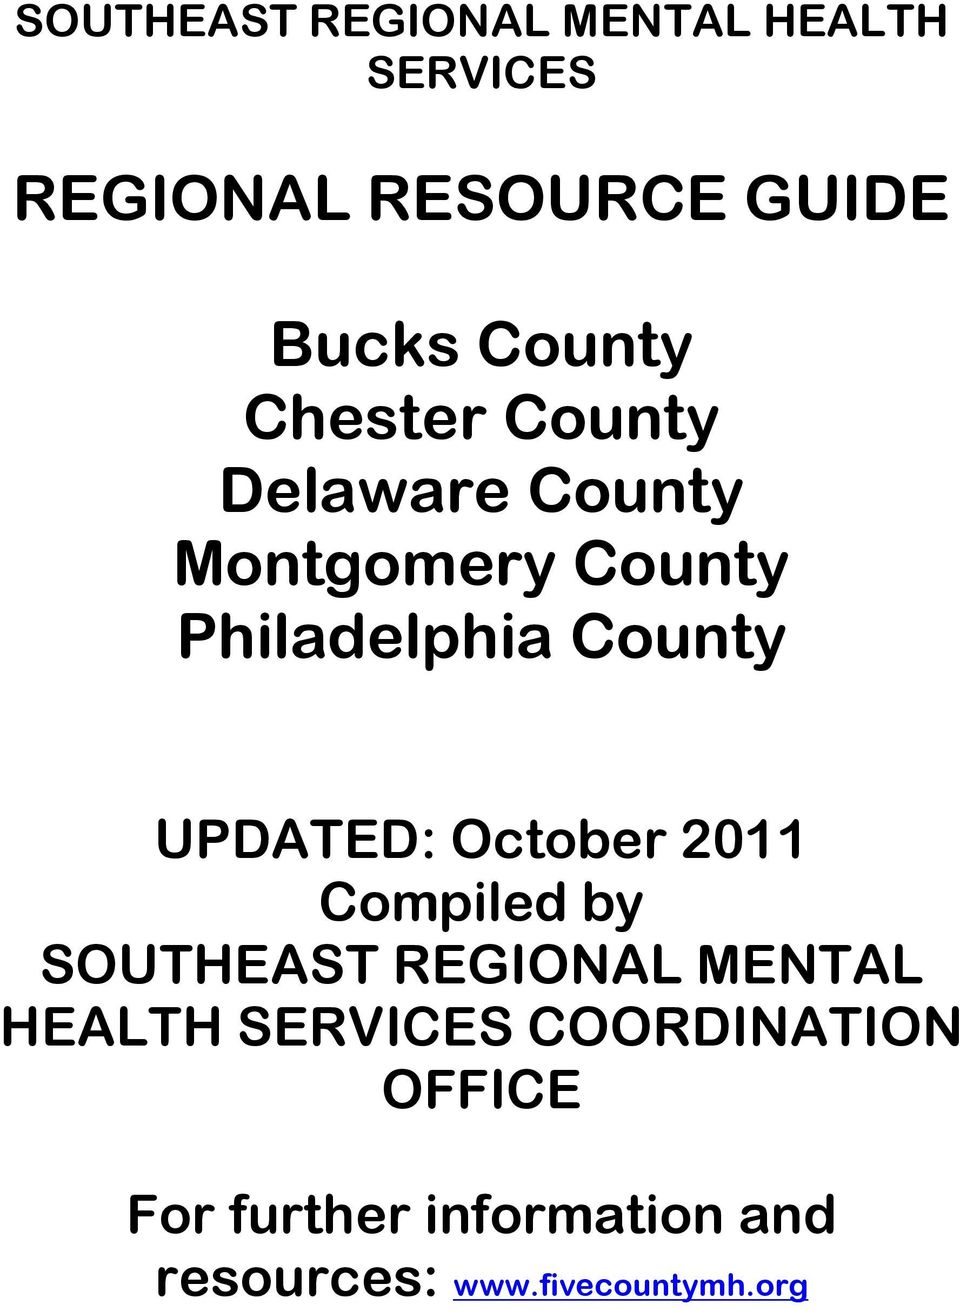 UPDATED: October 2011 Compiled by SOUTHEAST REGIONAL MENTAL HEALTH SERVICES